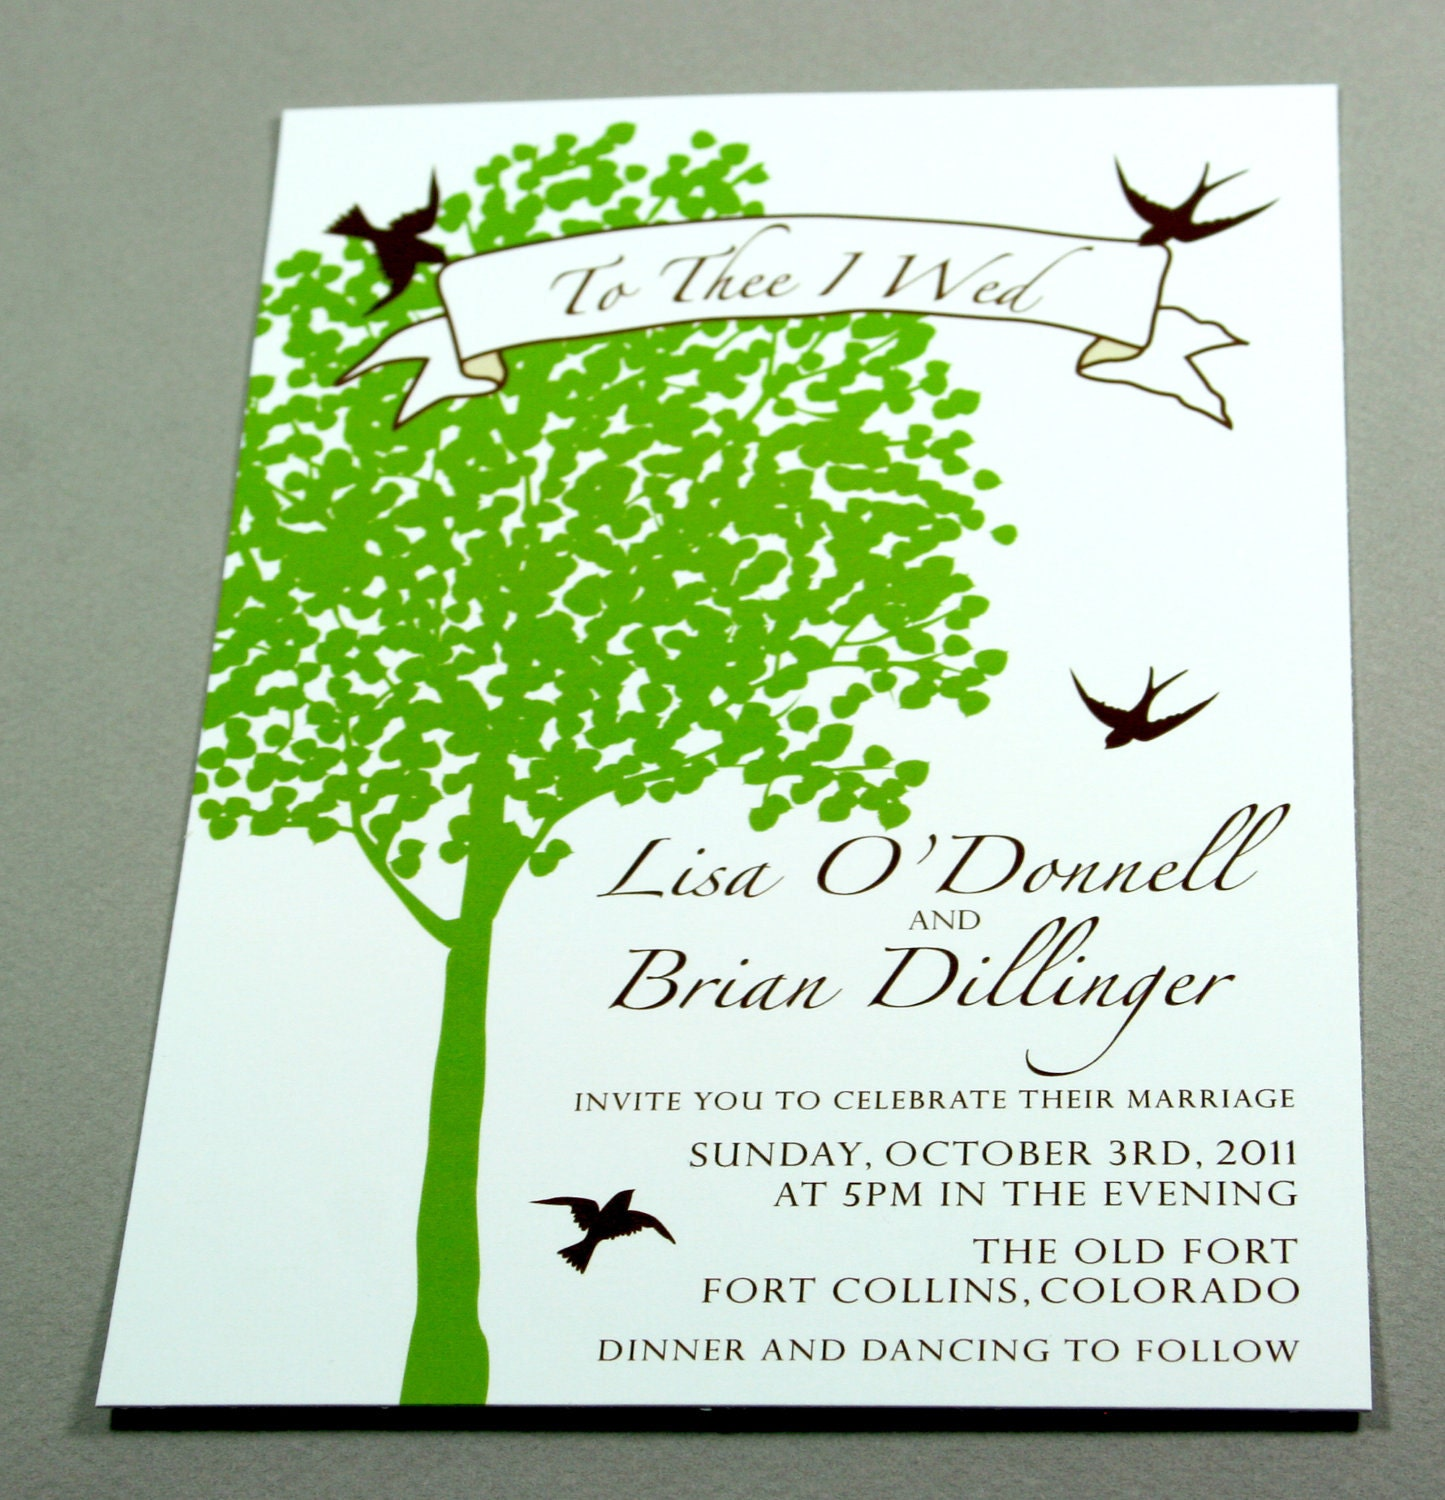 Modern Rustic Tree Wedding Invitation with Birds custom colors and words